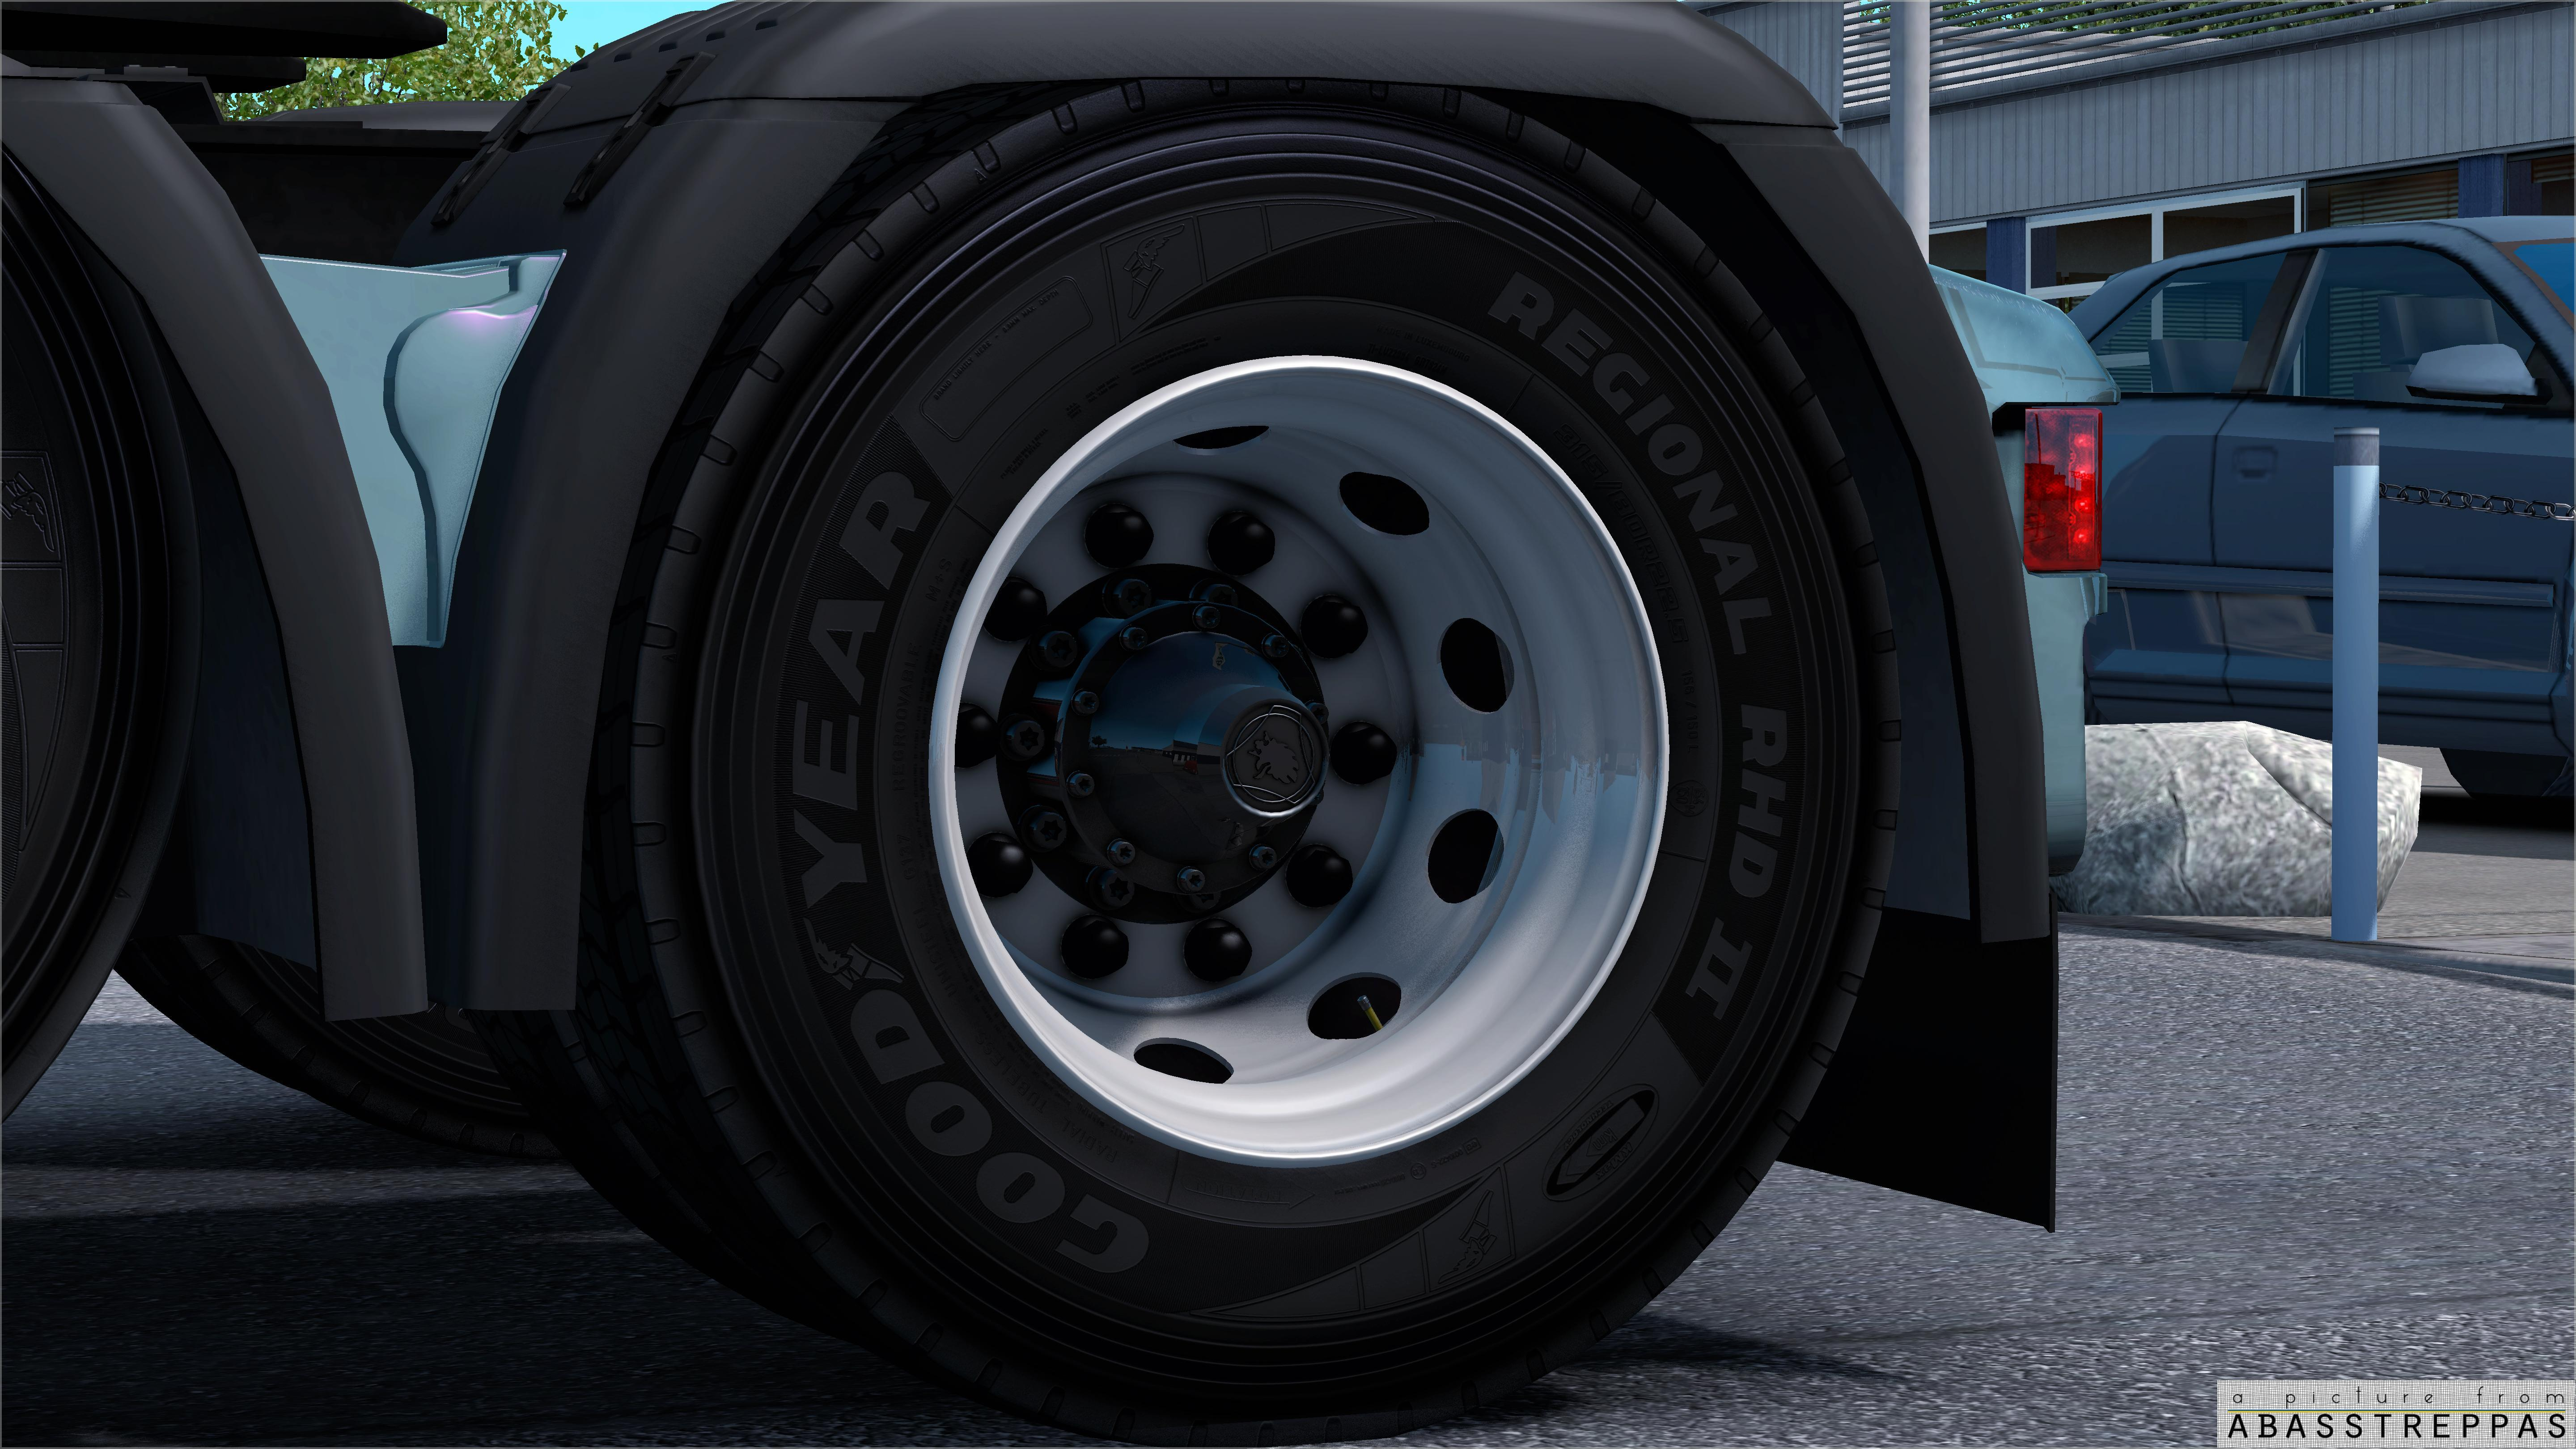 Rims and tyres by abasstreppas